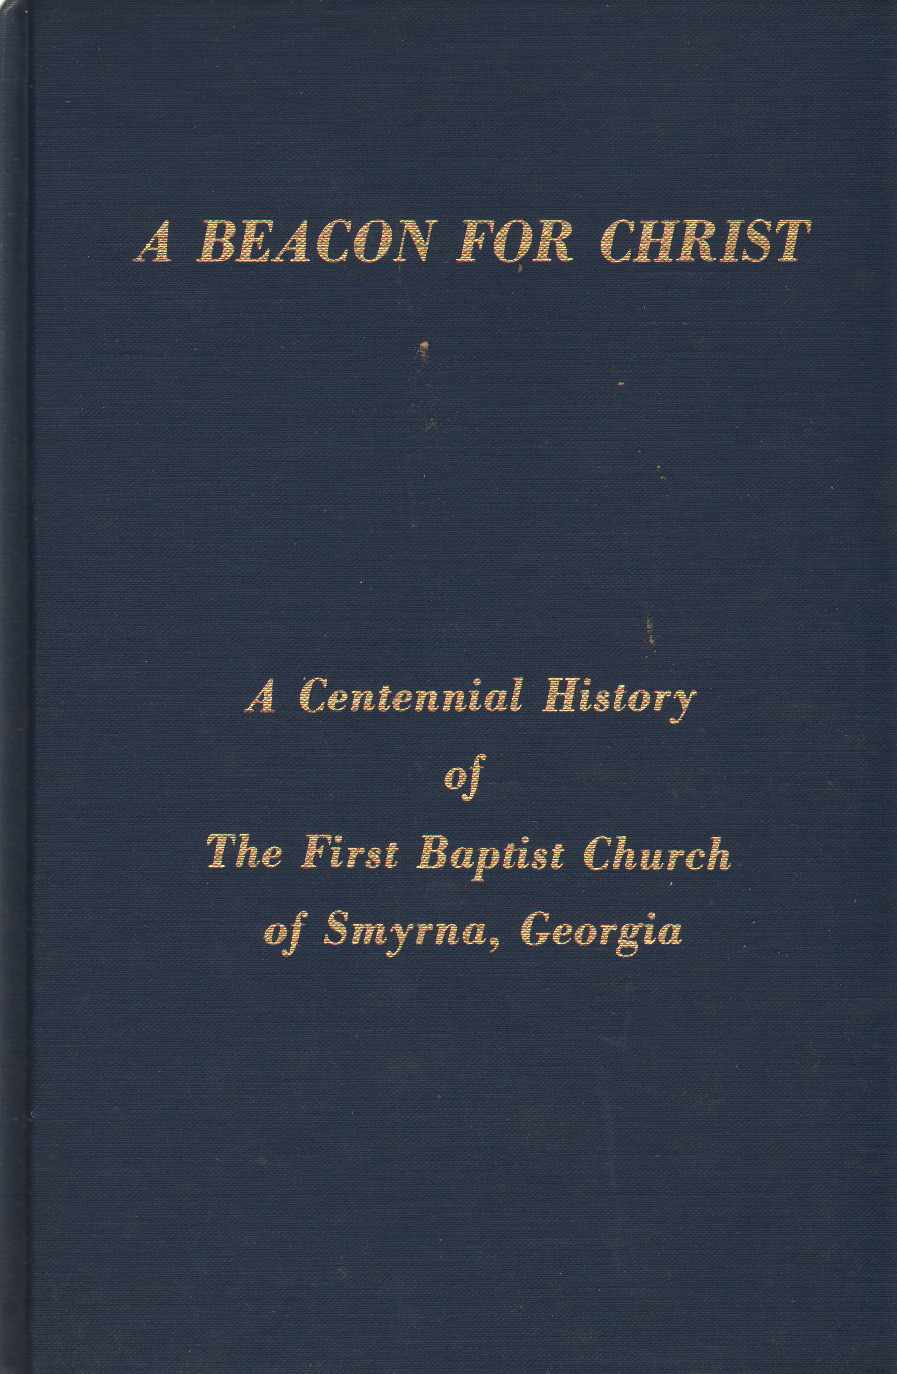 Image for A BEACON FOR CHRIST  A centennial history of the First Baptist Church of Smyrna, Georgia